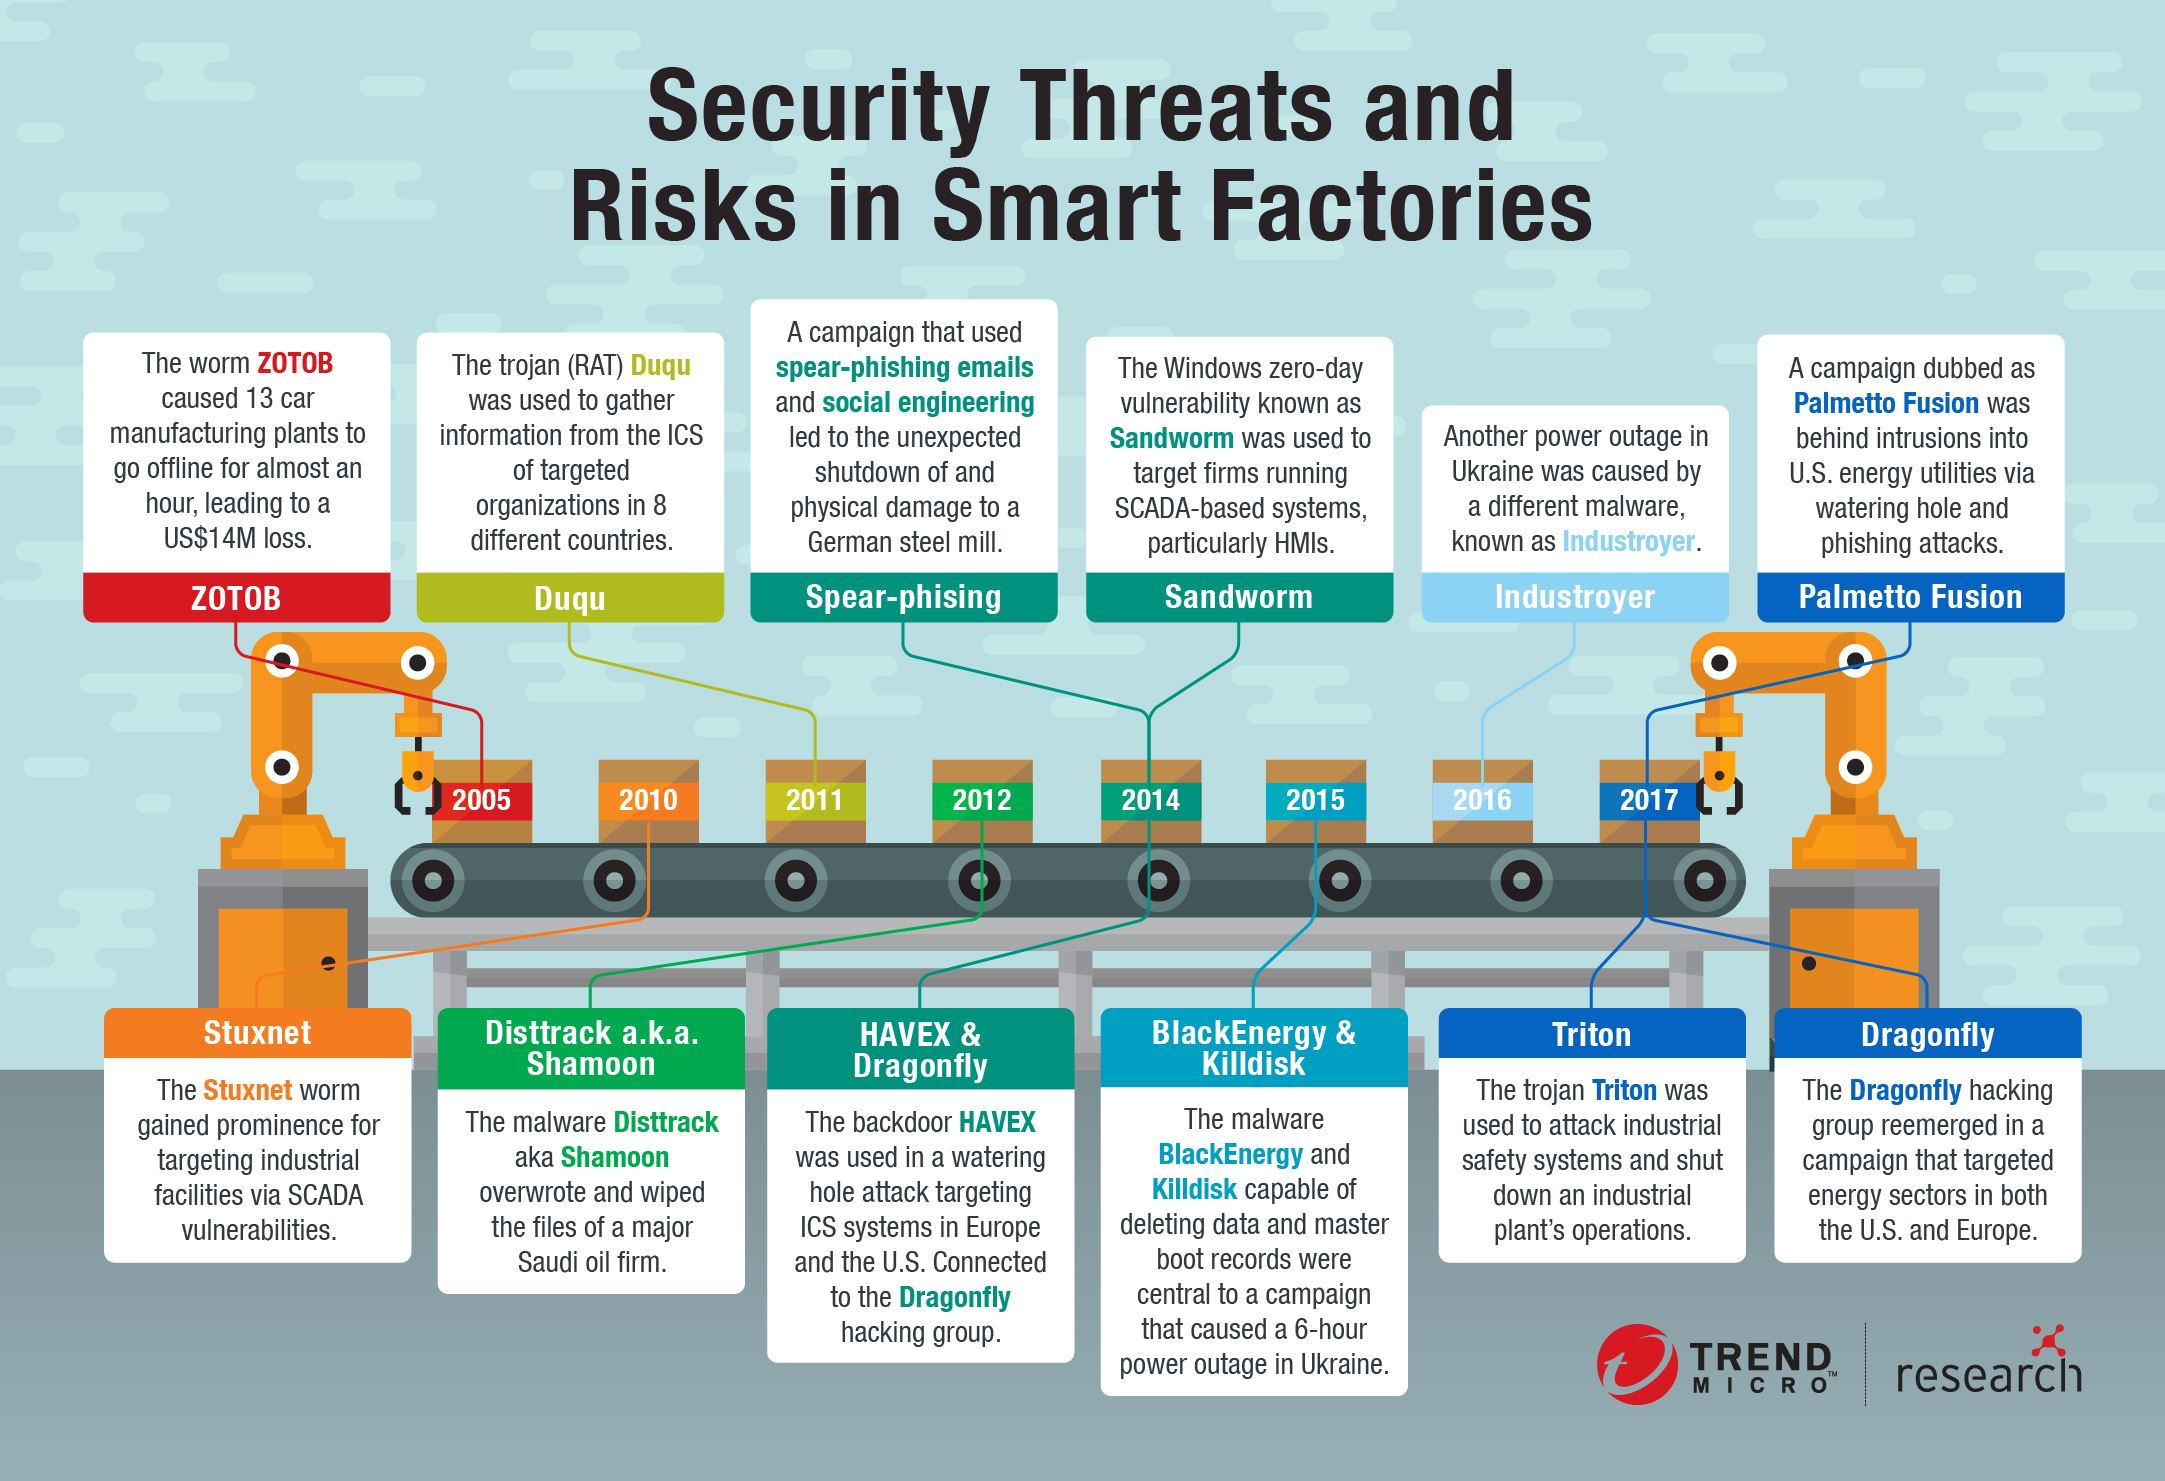 Smart Factories Threats Timeline